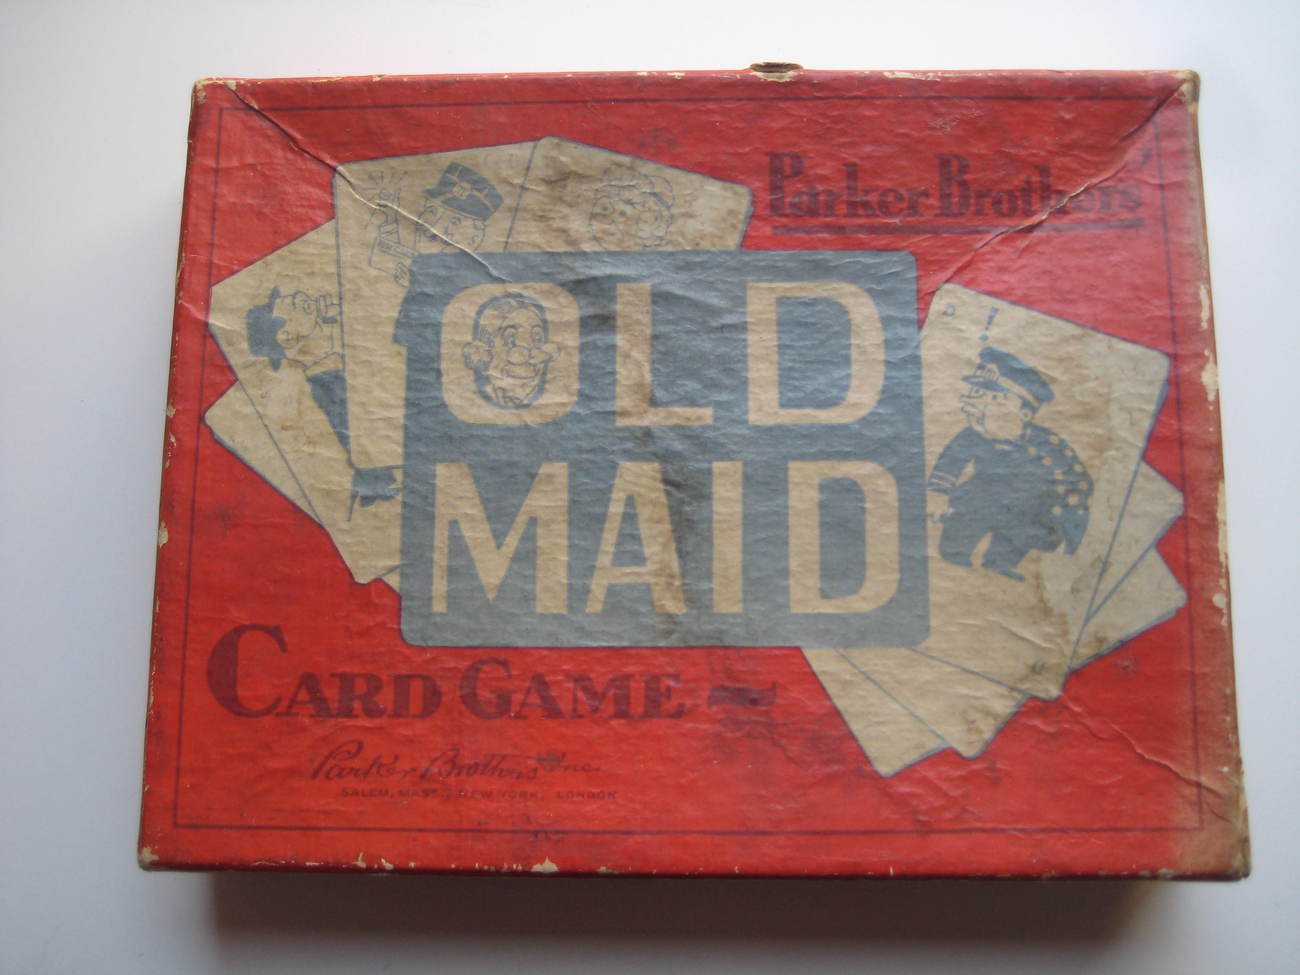 Collectibles: Vintage Card Game: Old Maid, Parker Bros